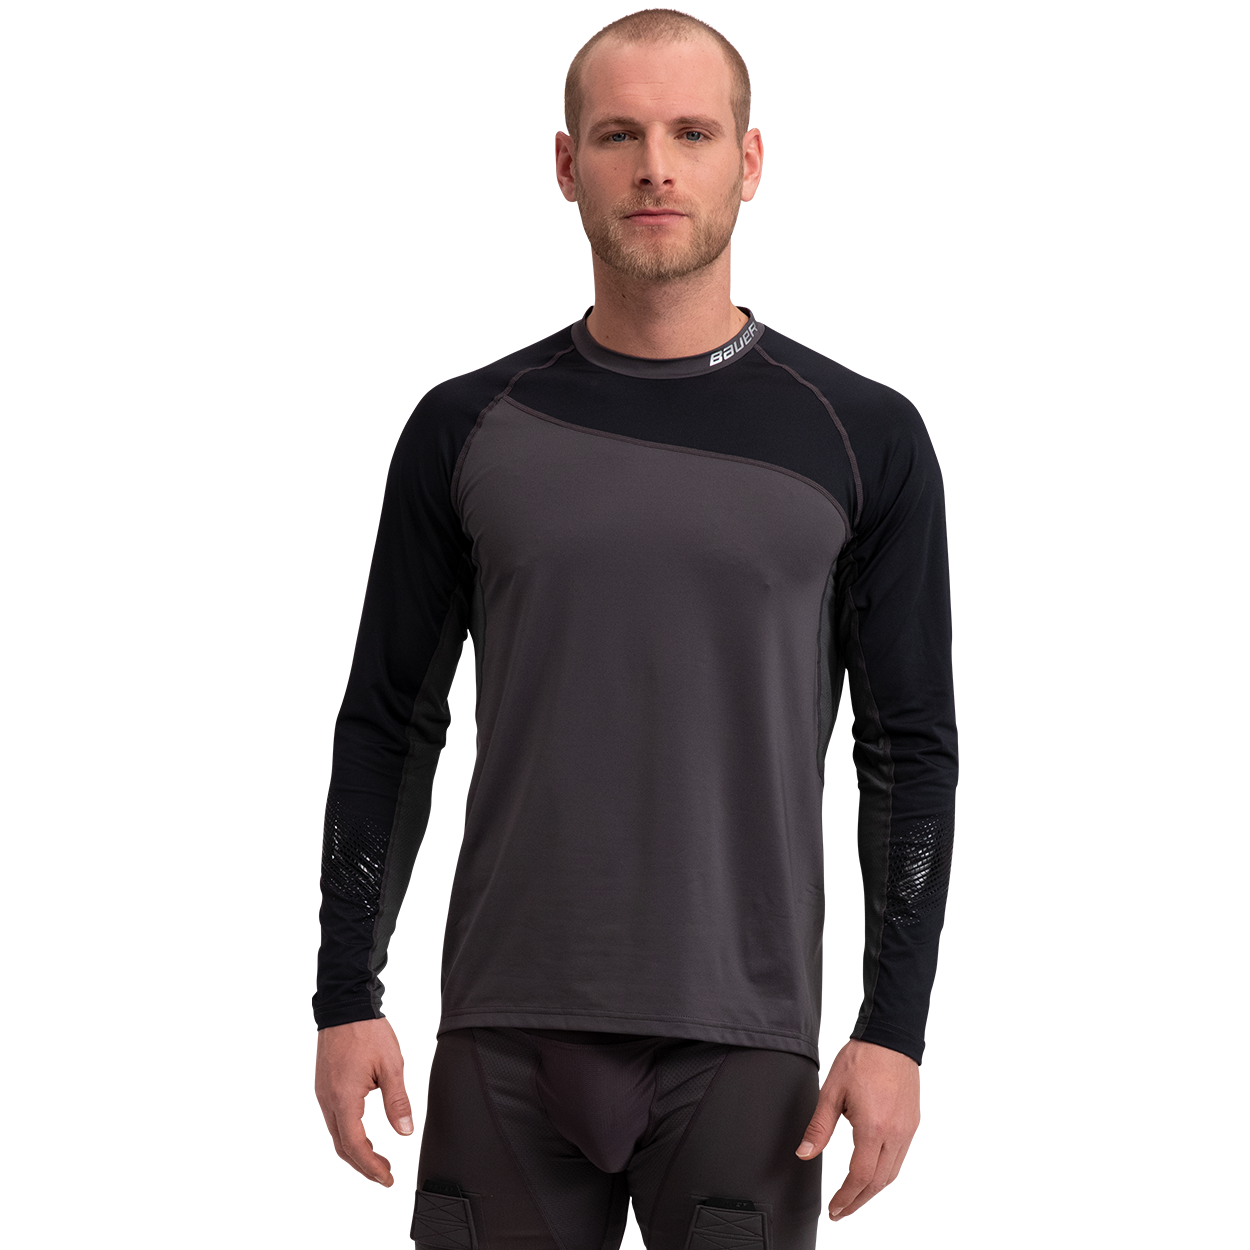 Pro Long Sleeve Base Layer Top,Schwarz,Medium